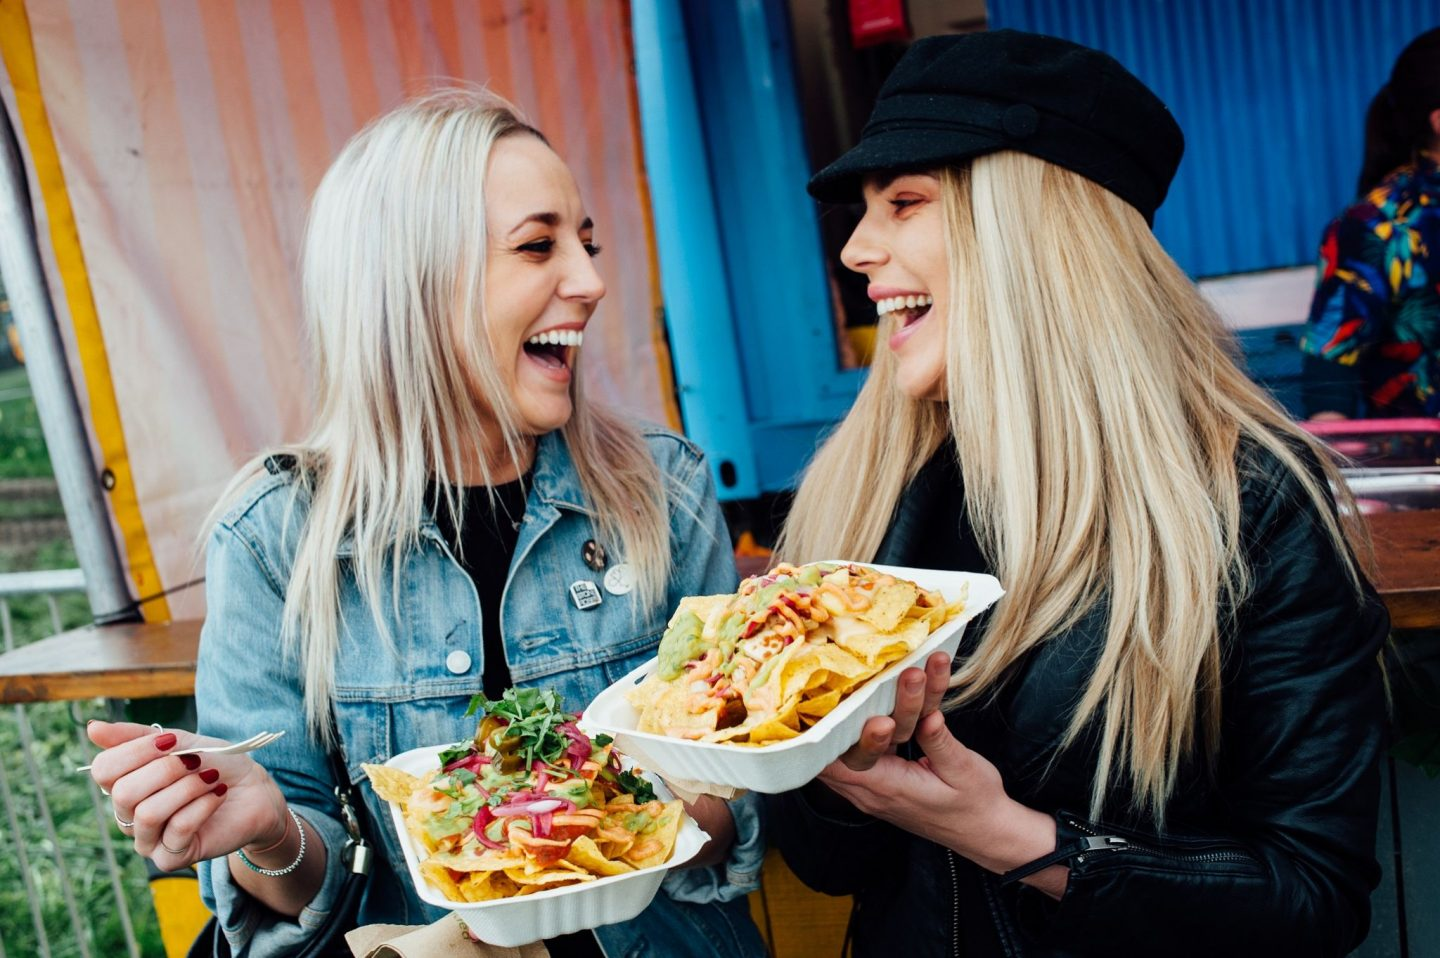 Manchester-Eats-Festival-How-To-Win-Free-Tickets-Blogger-Food